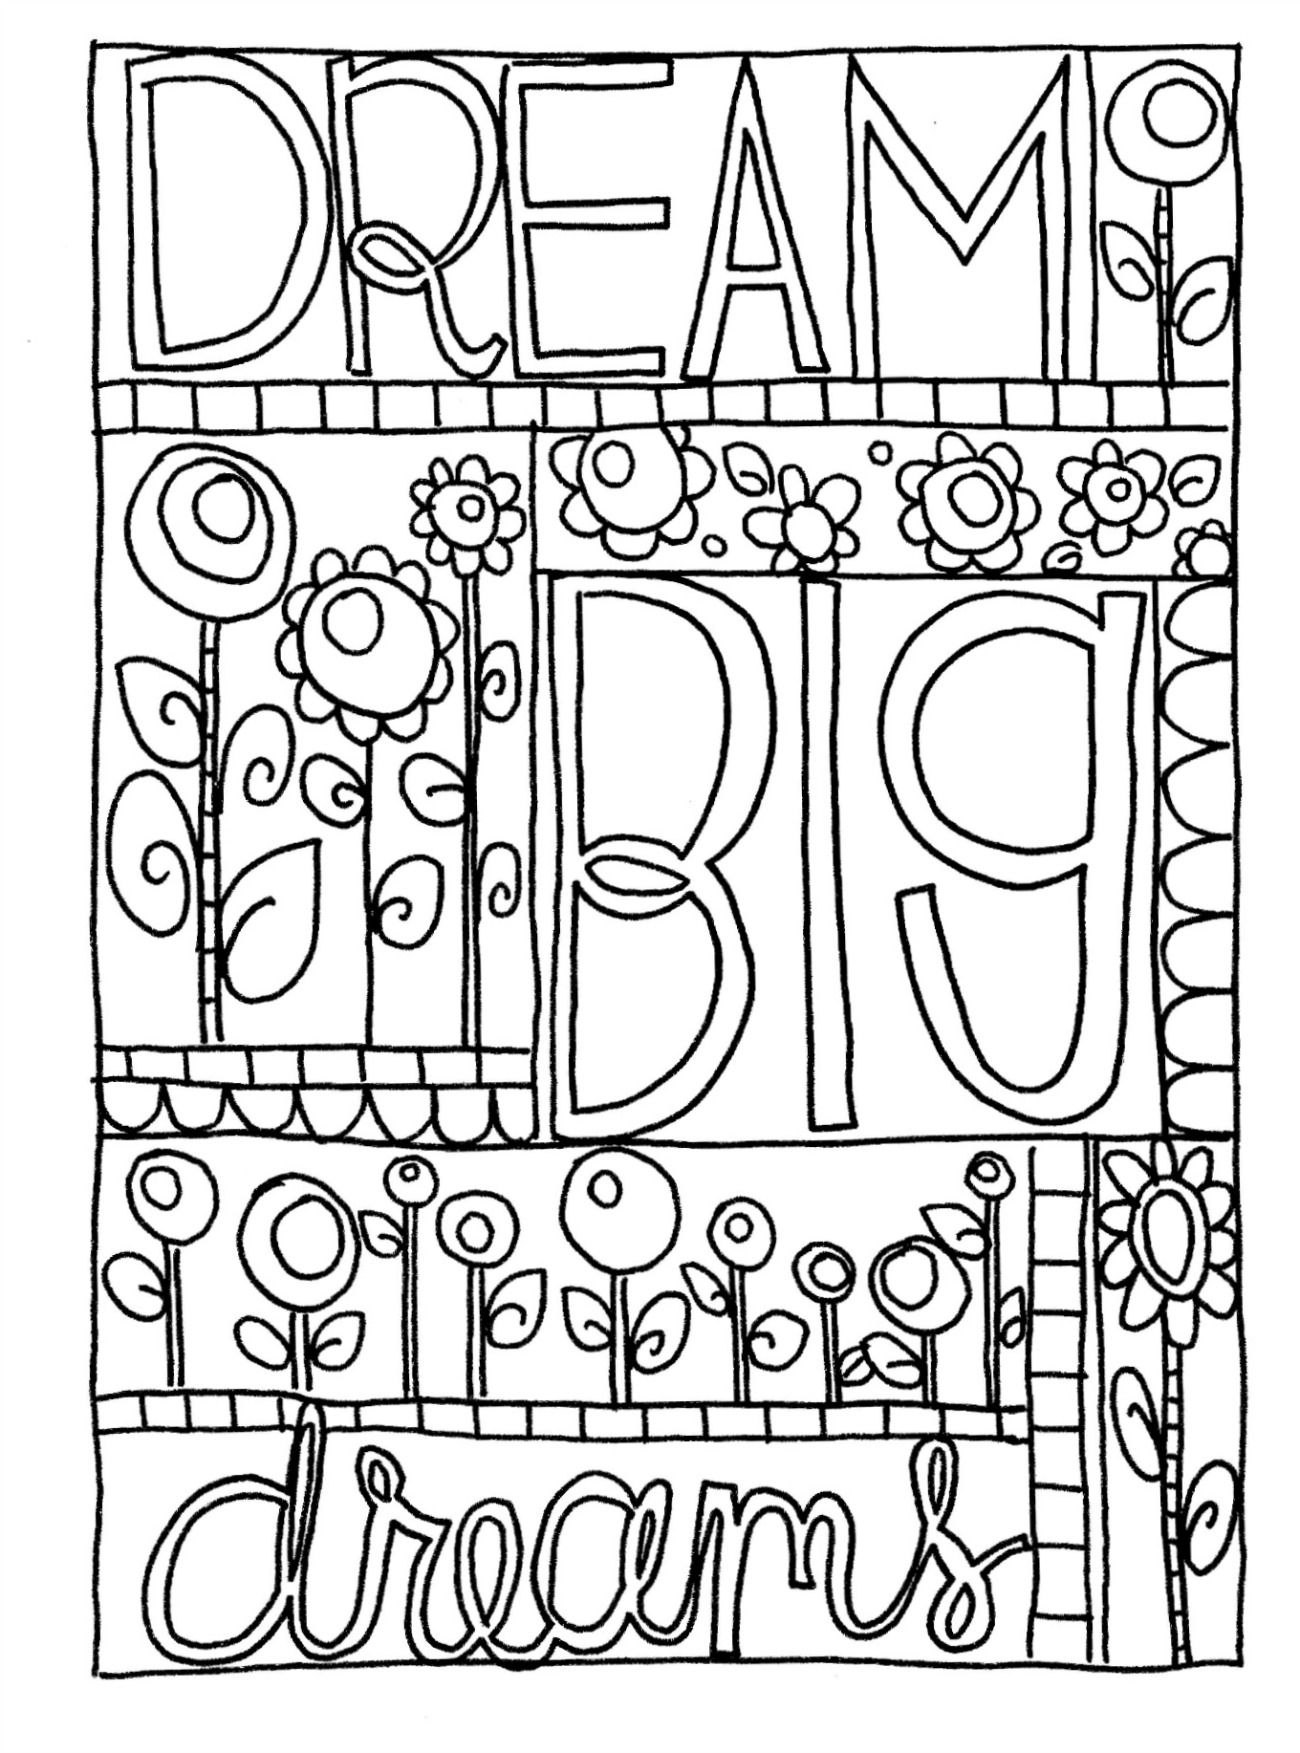 kids art coloring pages easy painting techniques by peter dranitsin free coloring pages kids art coloring